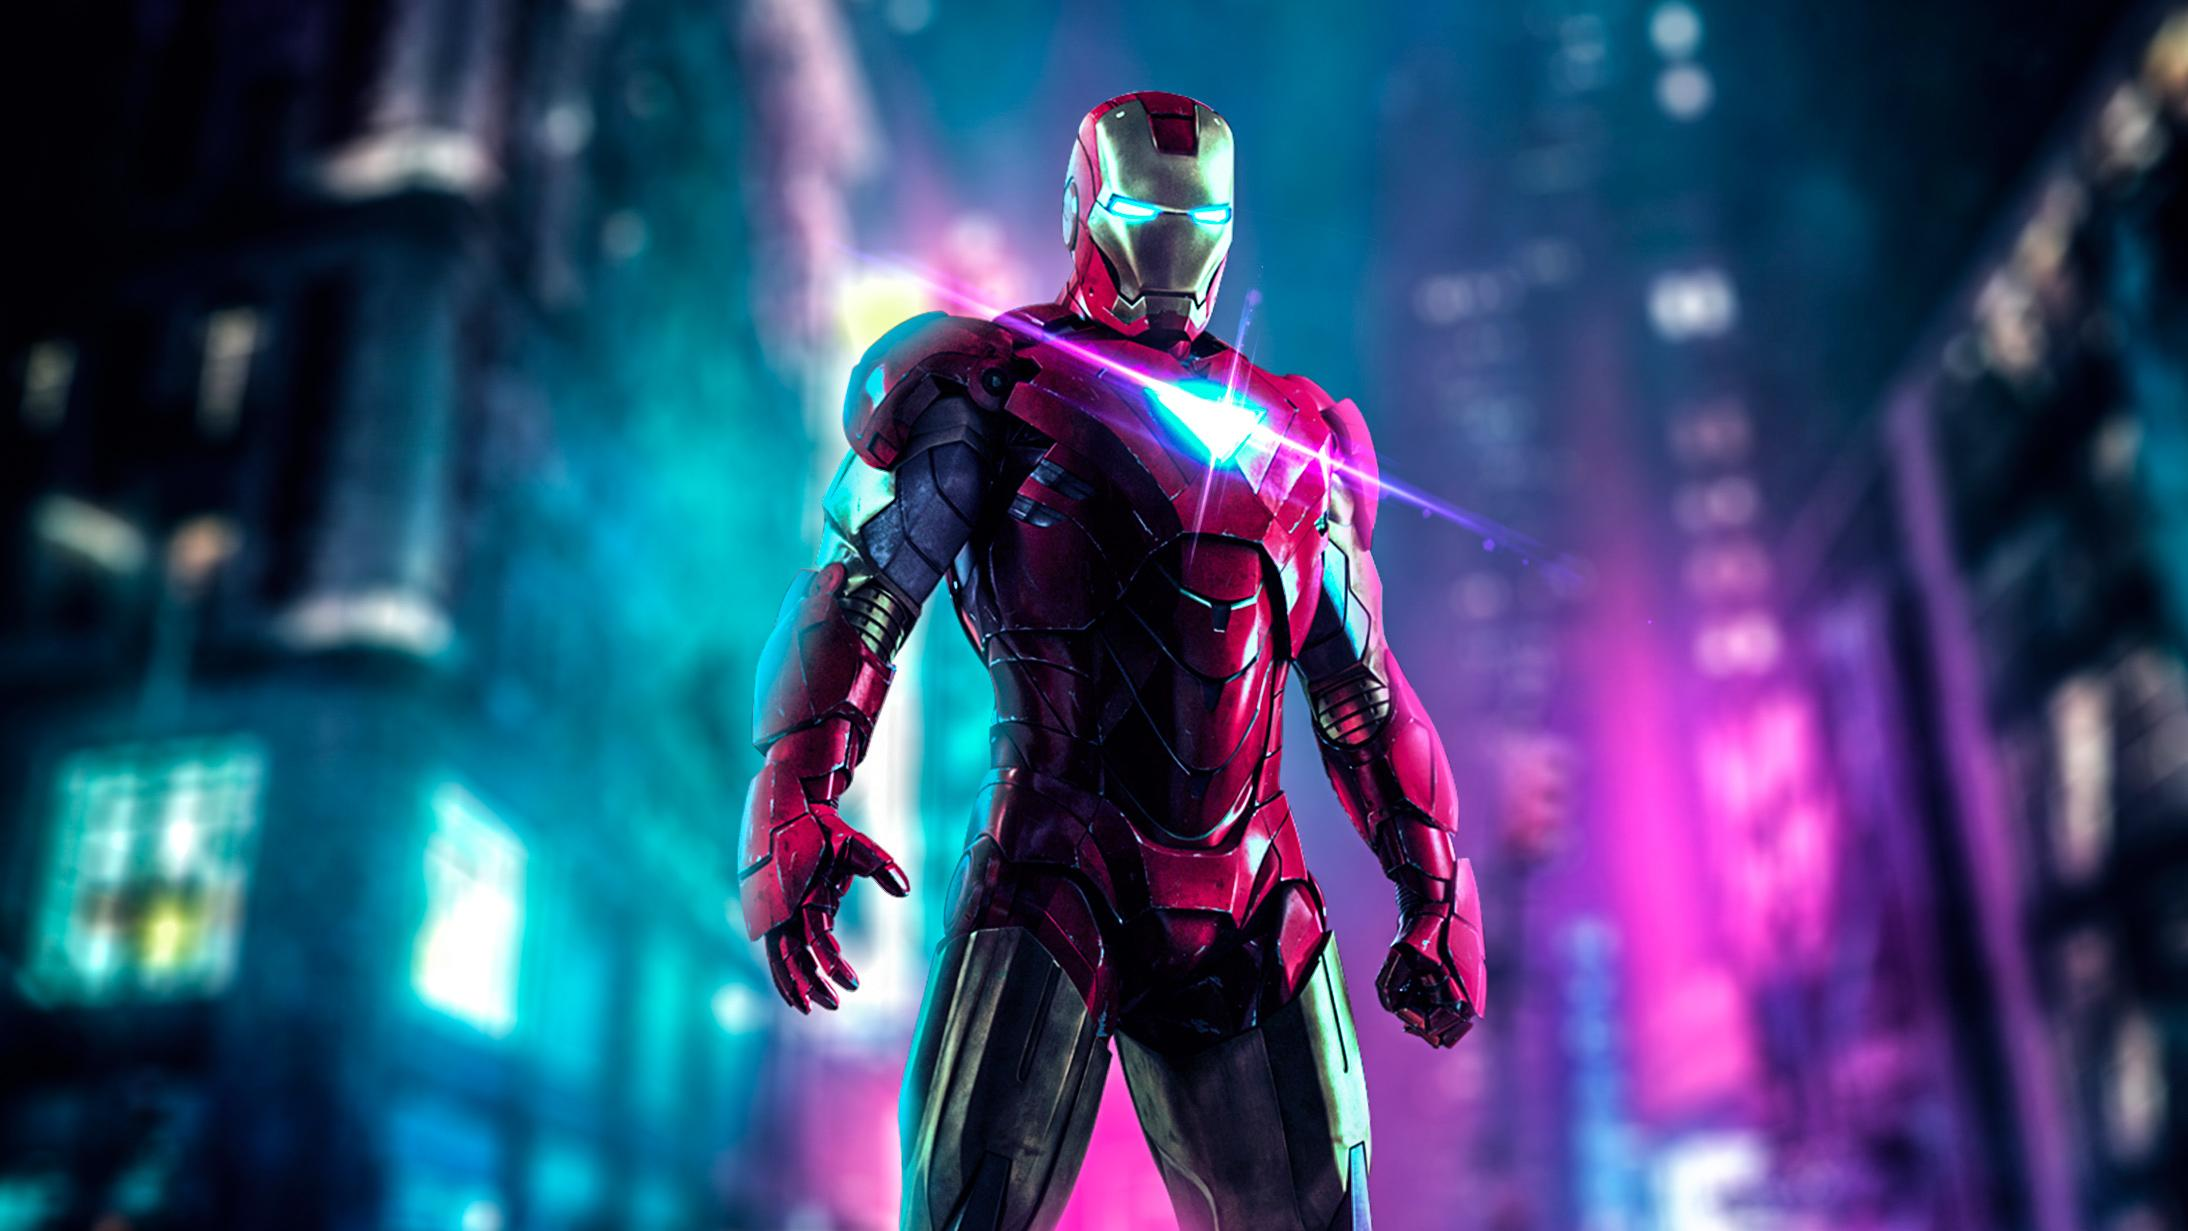 Iron Man Neon Wallpapers Wallpaper Cave